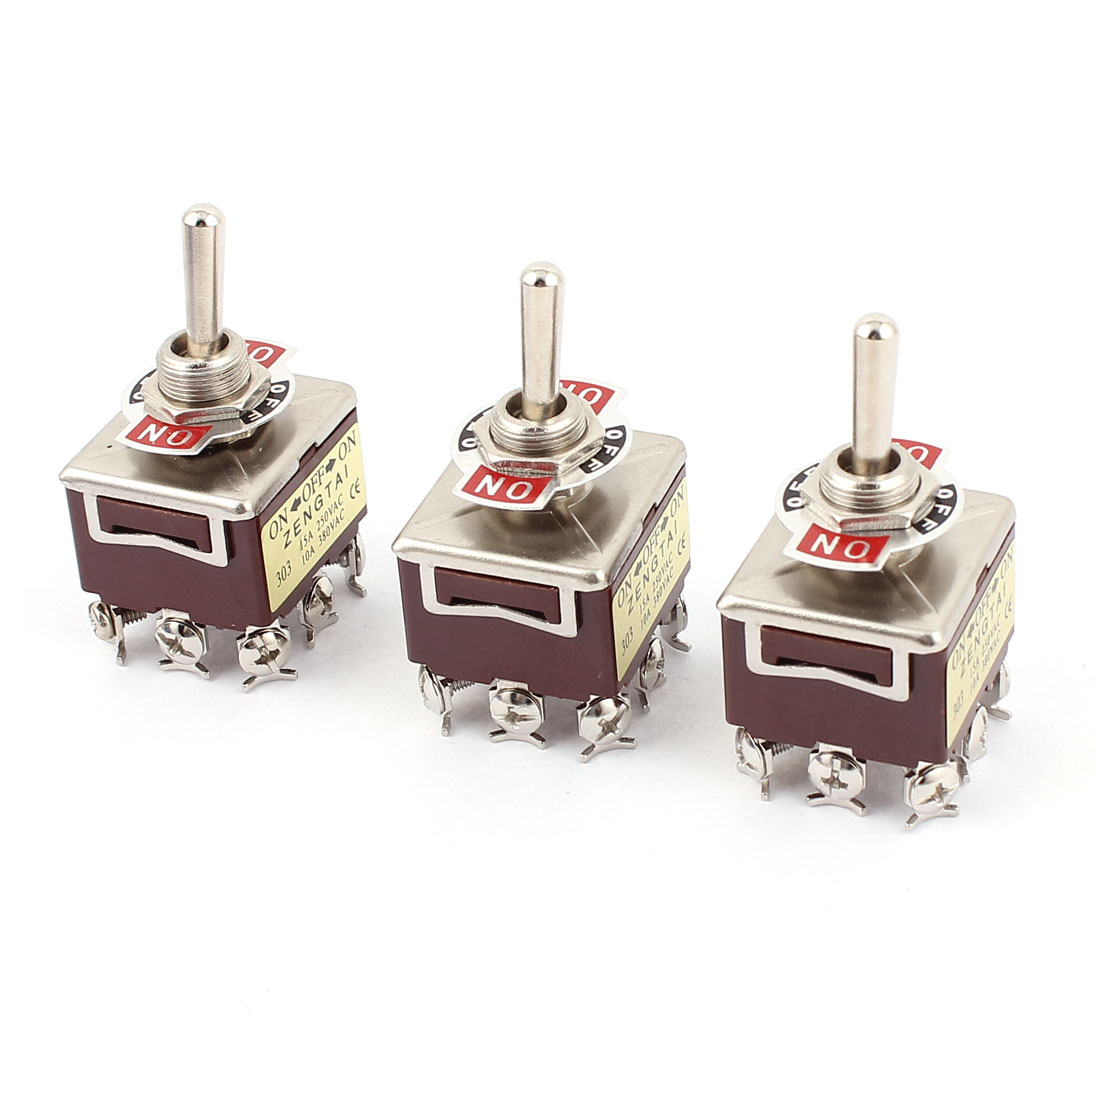 3 Pcs AC 250V 15A 380V 10A 9 Terminal ON-OFF-ON 3 Position 3PDT Toggle Switch